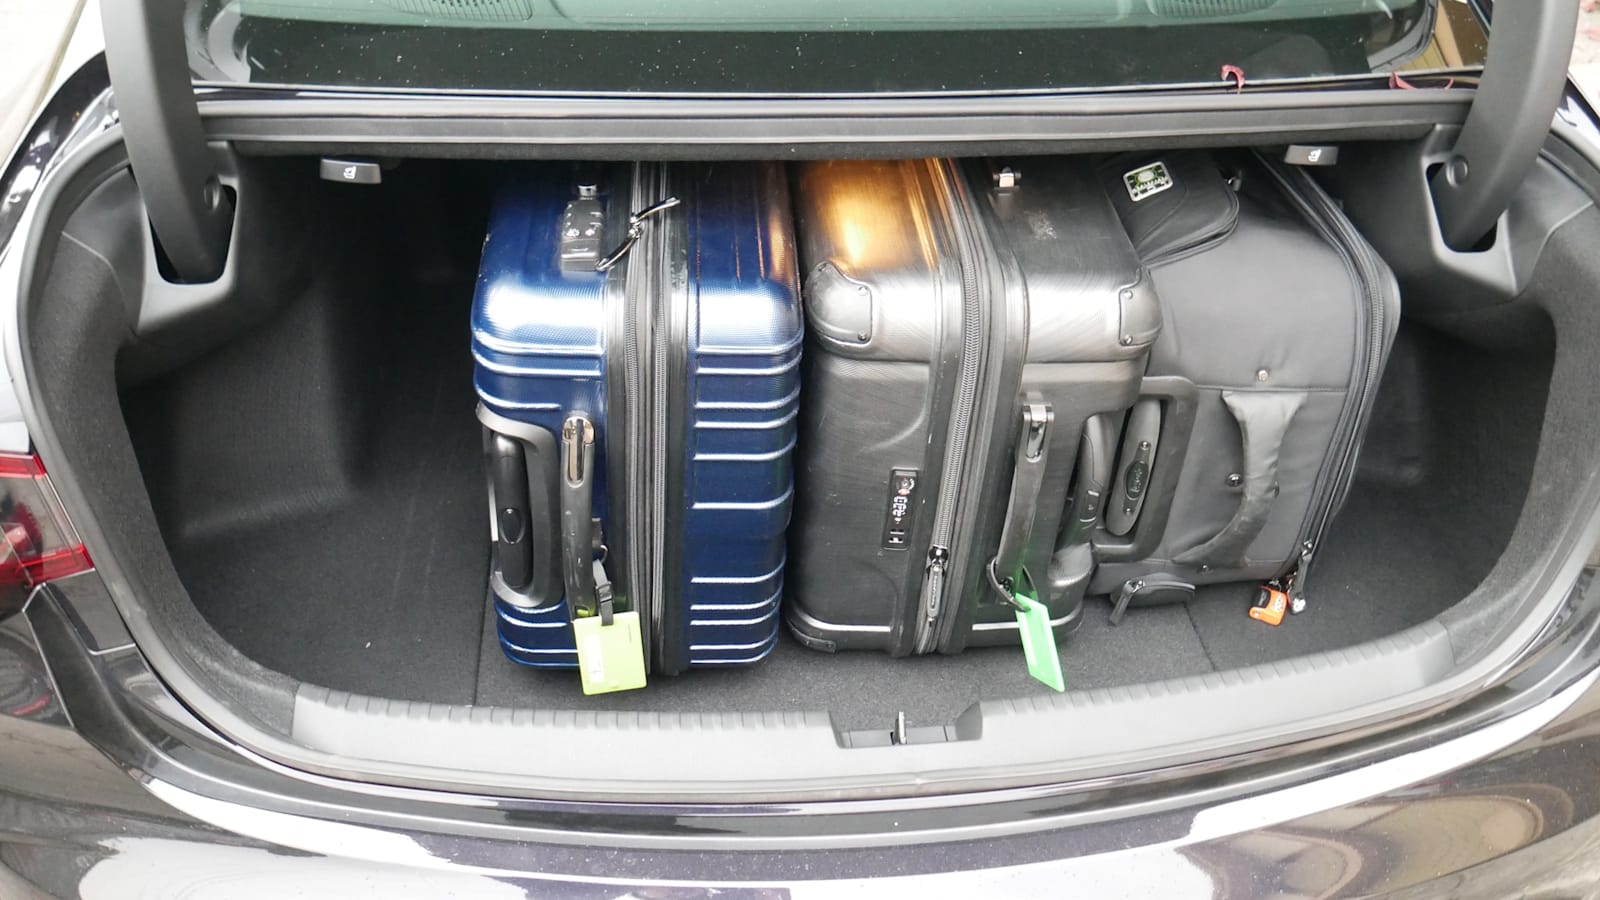 2021 Acura TLX luggage test bags on side